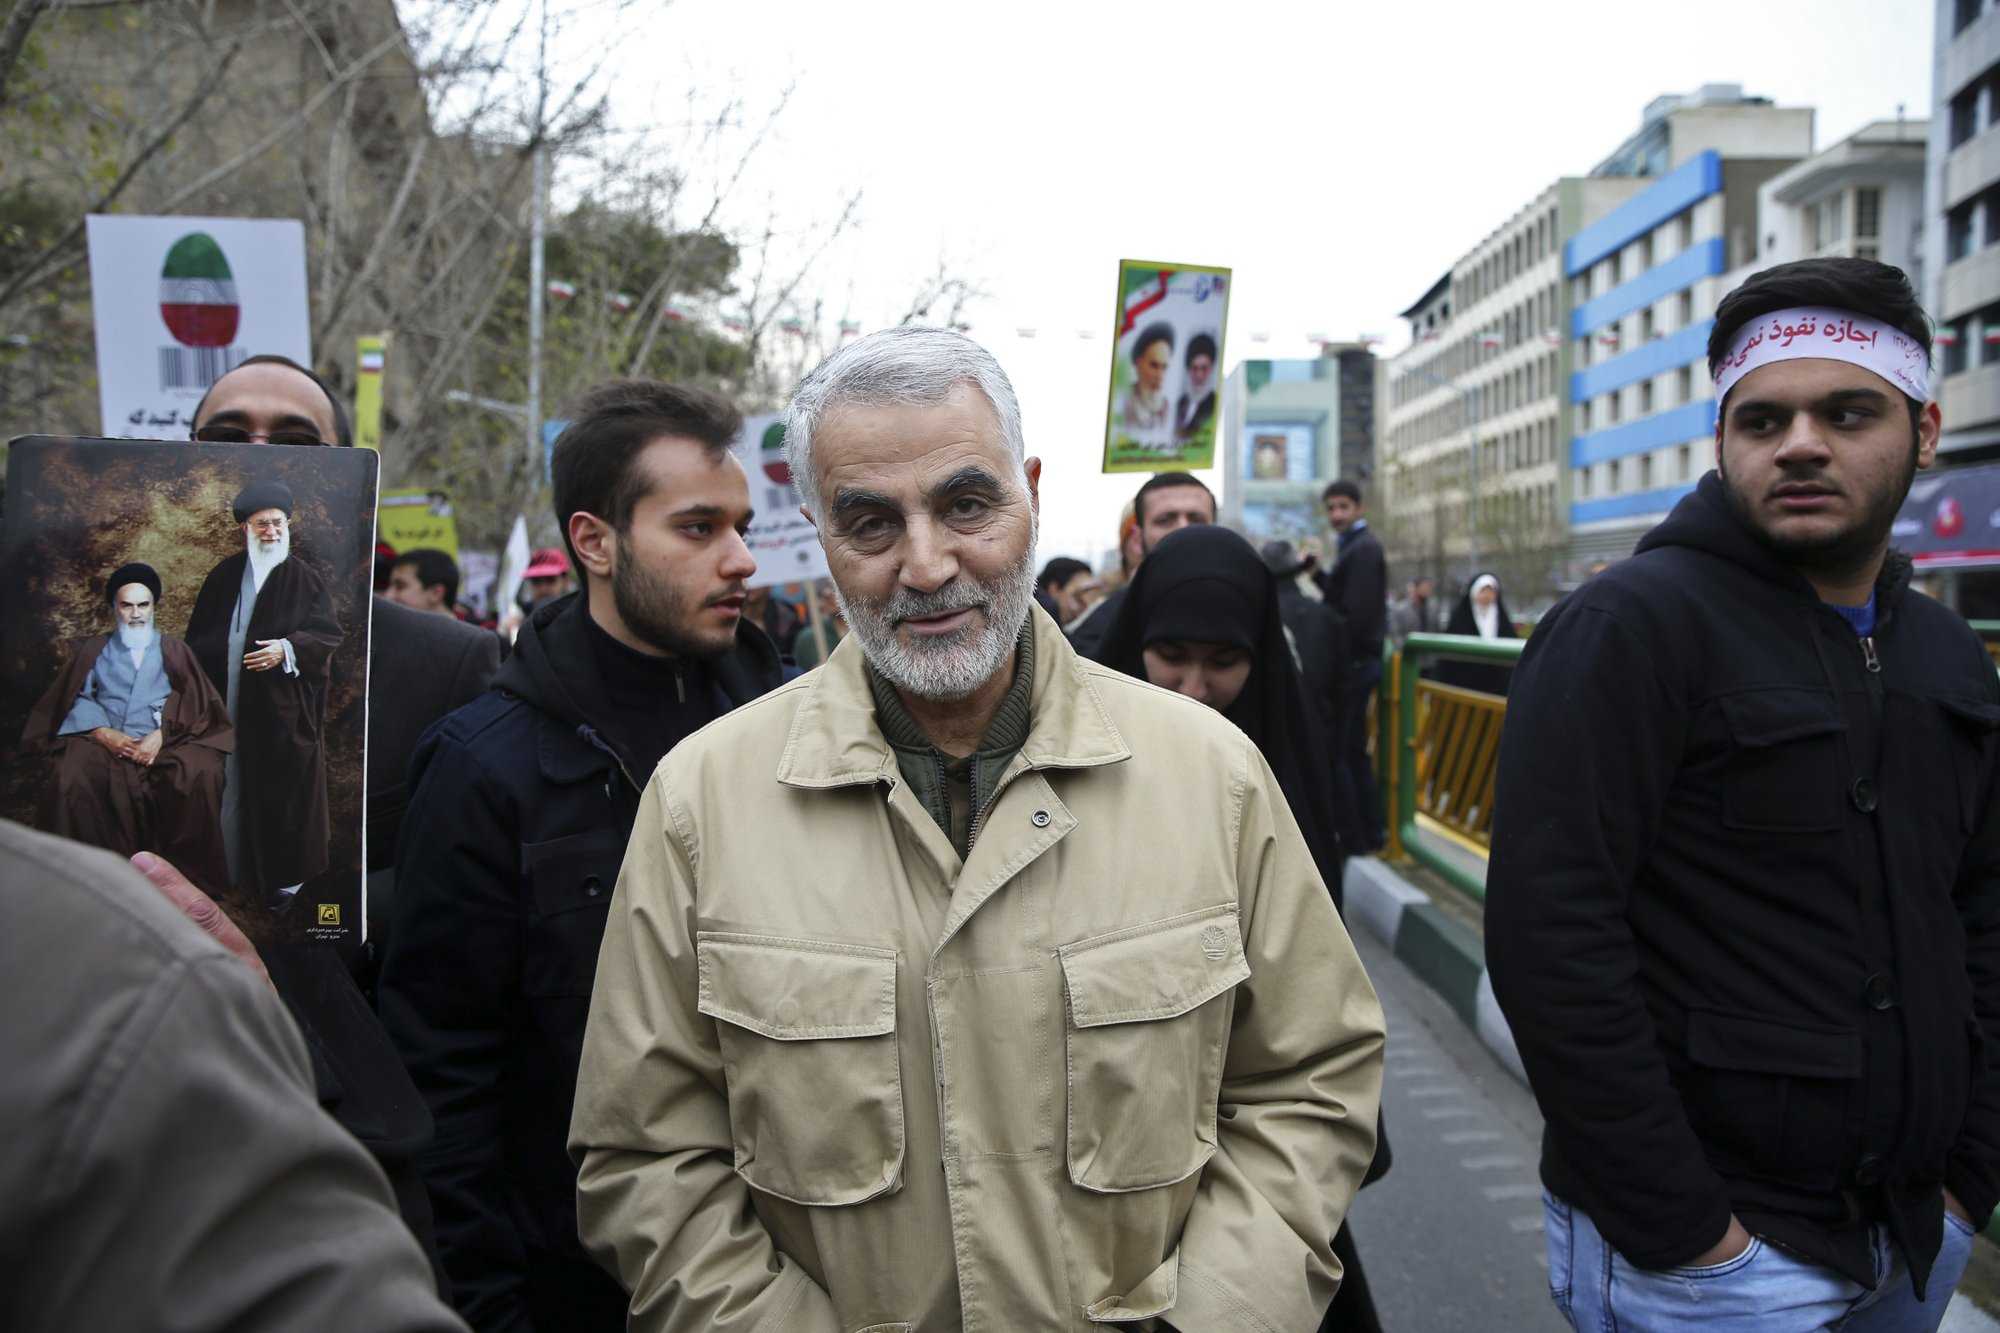 Report: Iran foiled assassination attempt against general